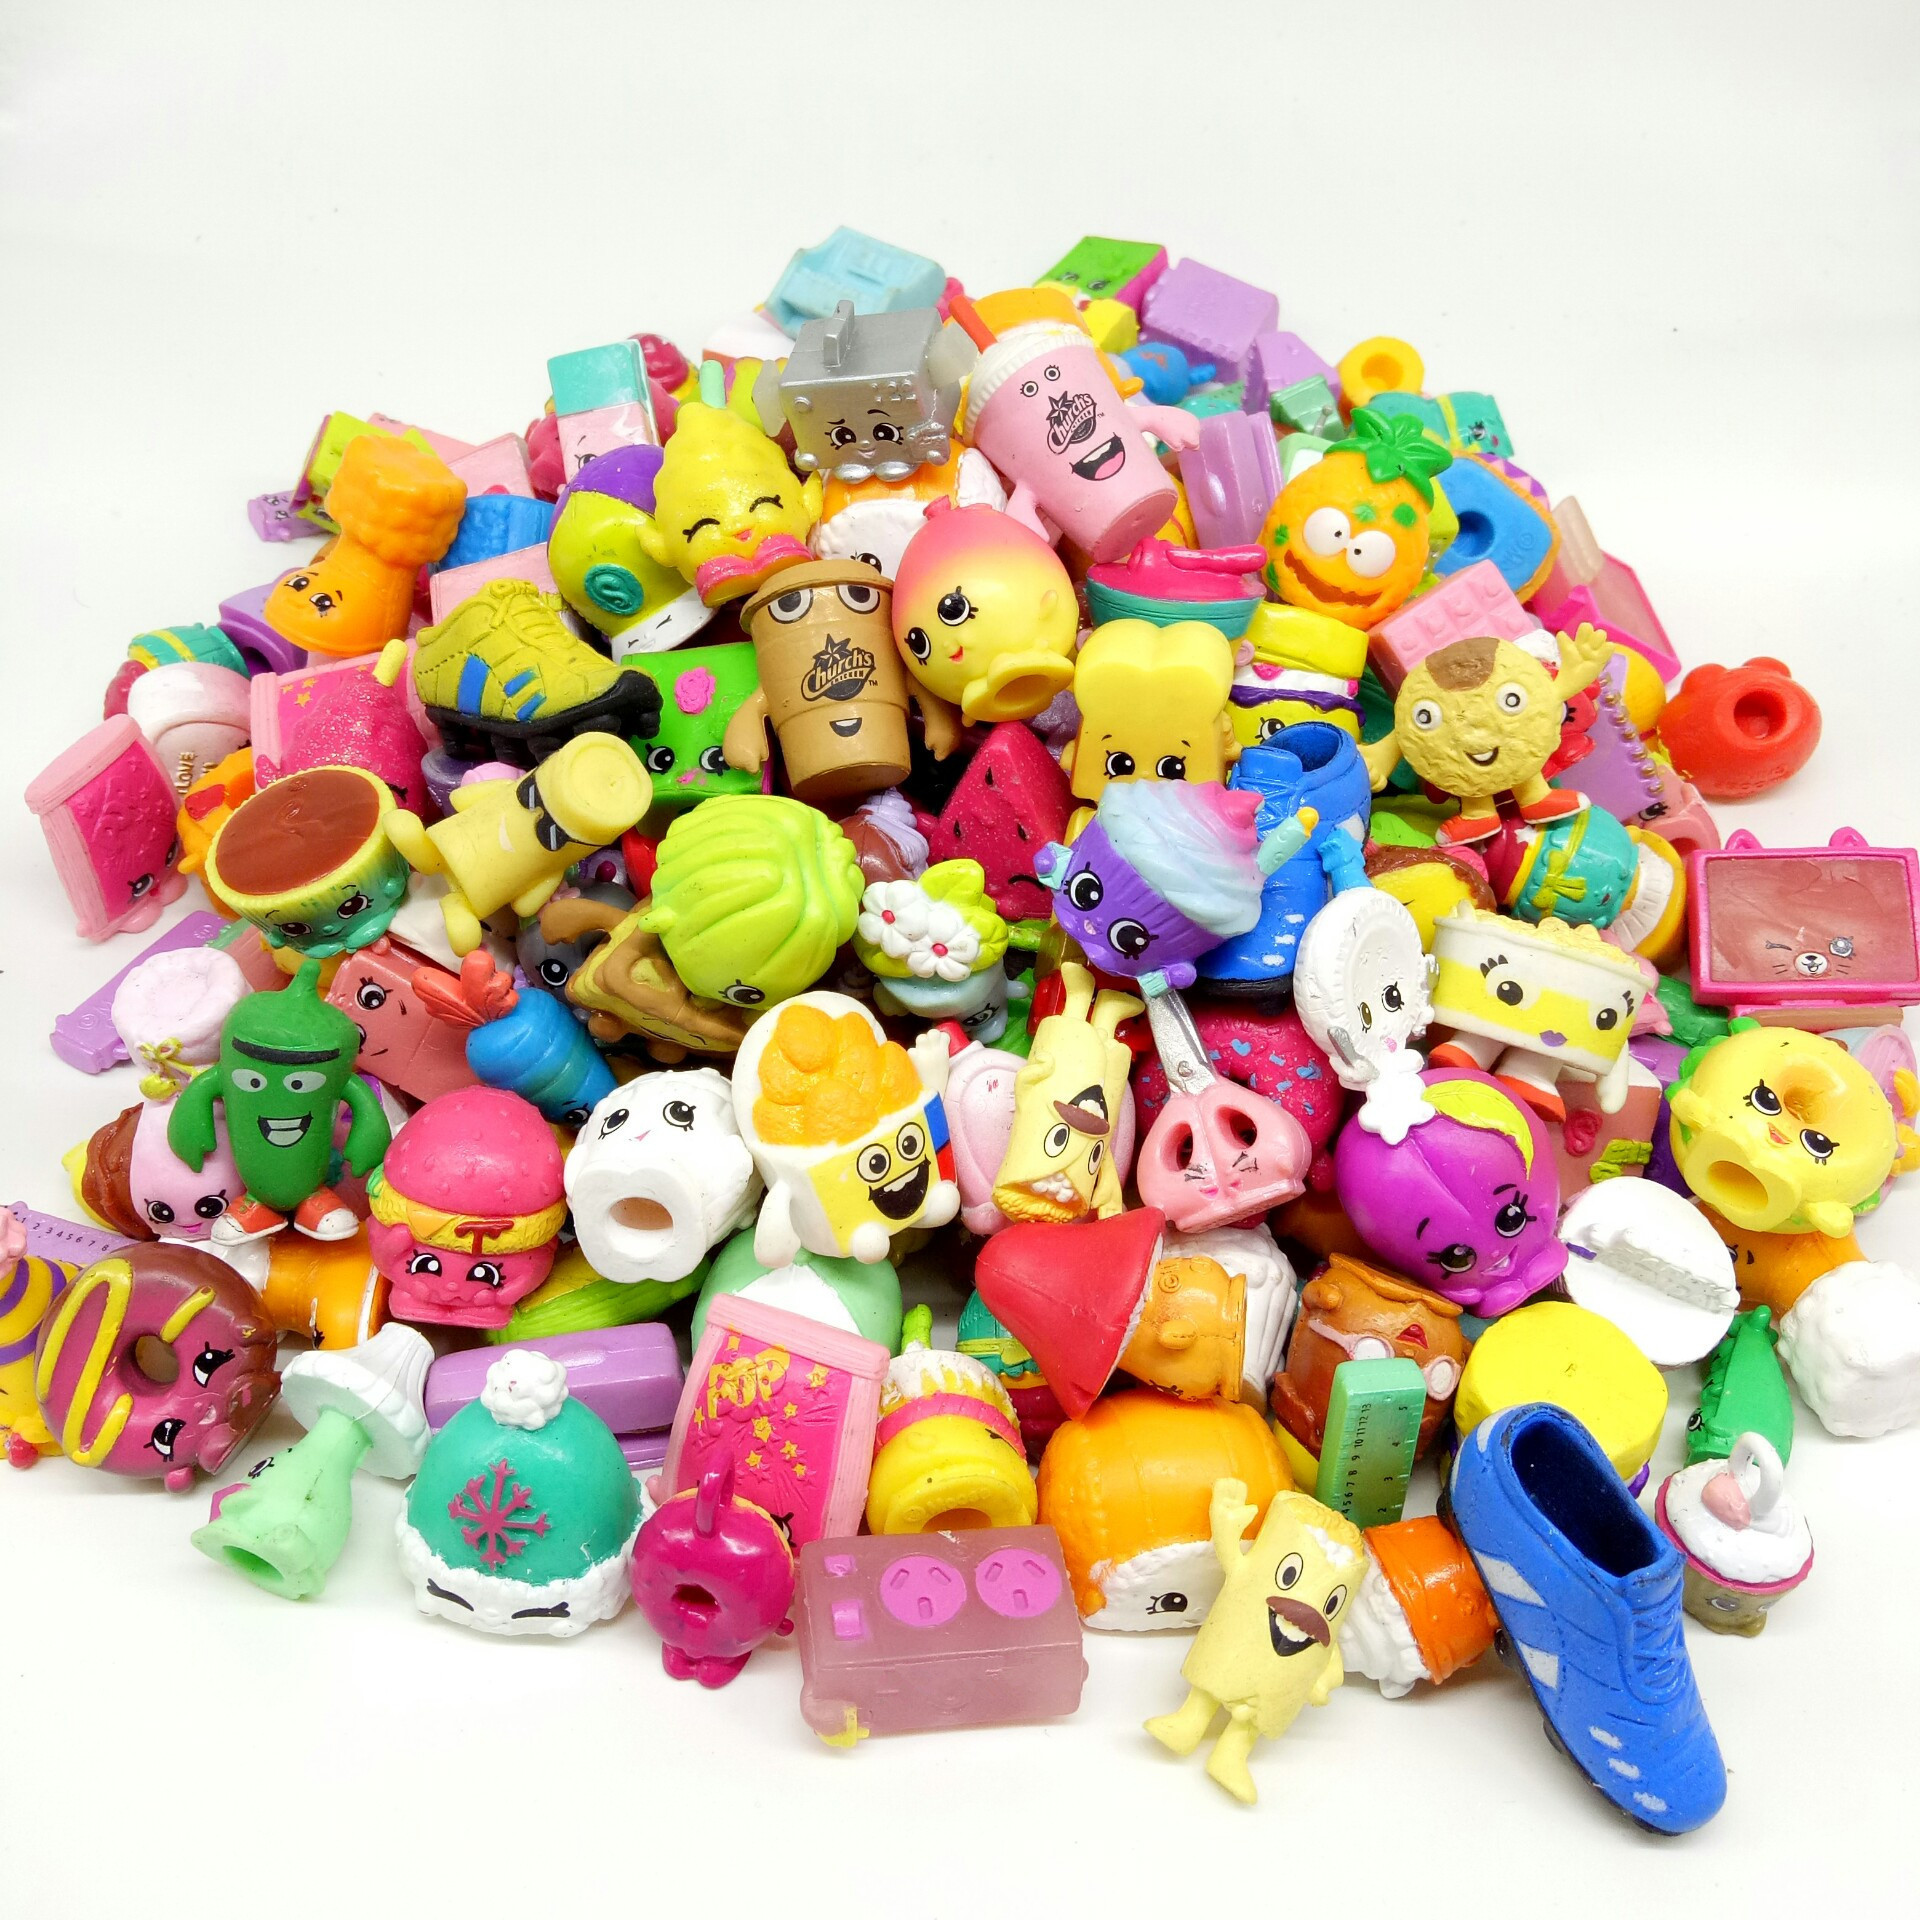 Economic 2to5cm Famous Cartoon Shopkin Hot Gift Toy Size Kids Play Soft Rubber Toy Random